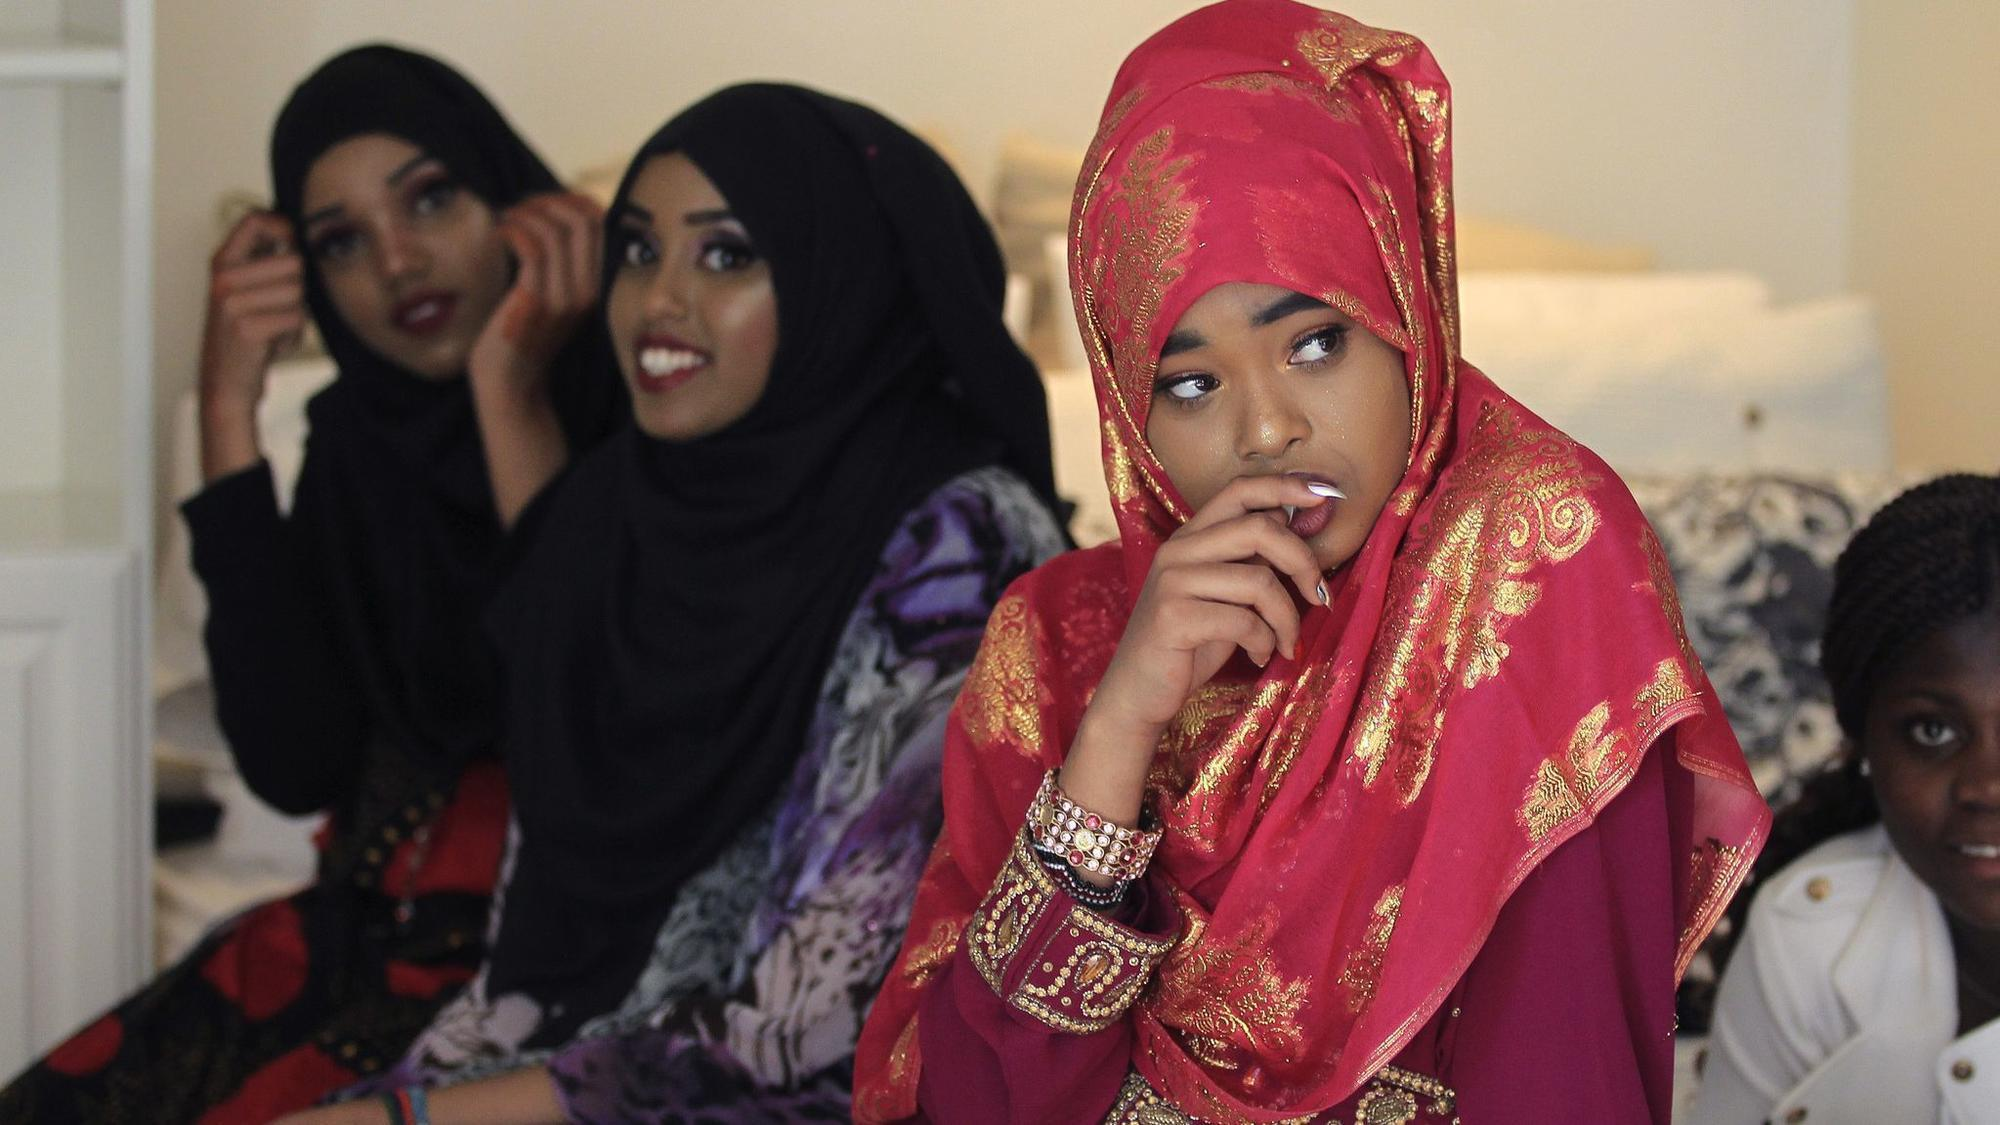 Refugee girls let their cultures shine through in fashion show